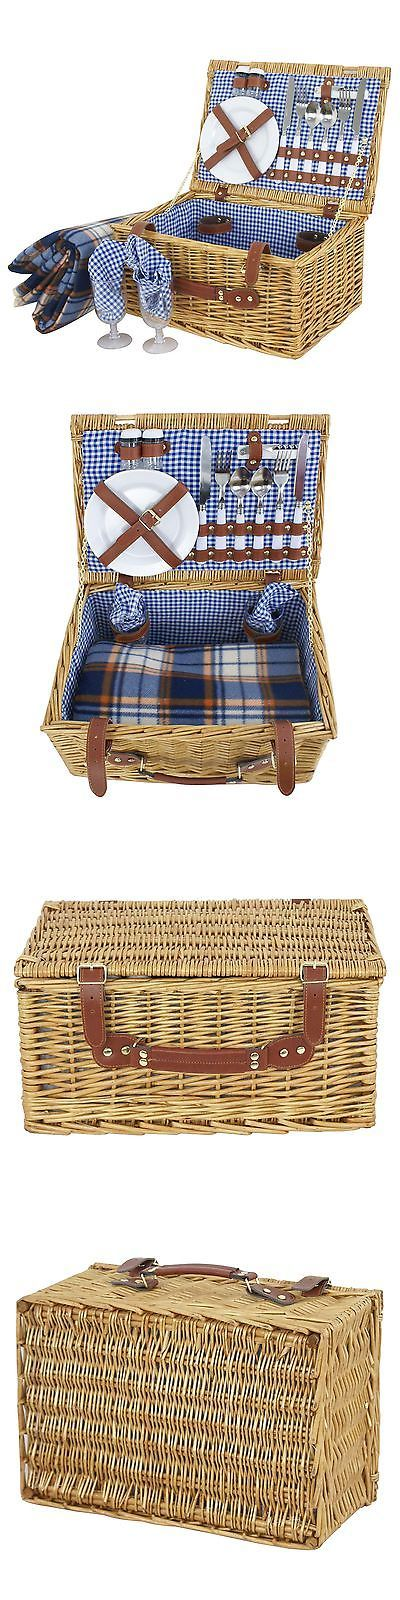 Picnic Baskets and Backpacks 38249: New Wicker Picnic Basket Set For 2 Brown 16 Pcs Wine Glasses Vintage Styling -> BUY IT NOW ONLY: $43.99 on eBay!